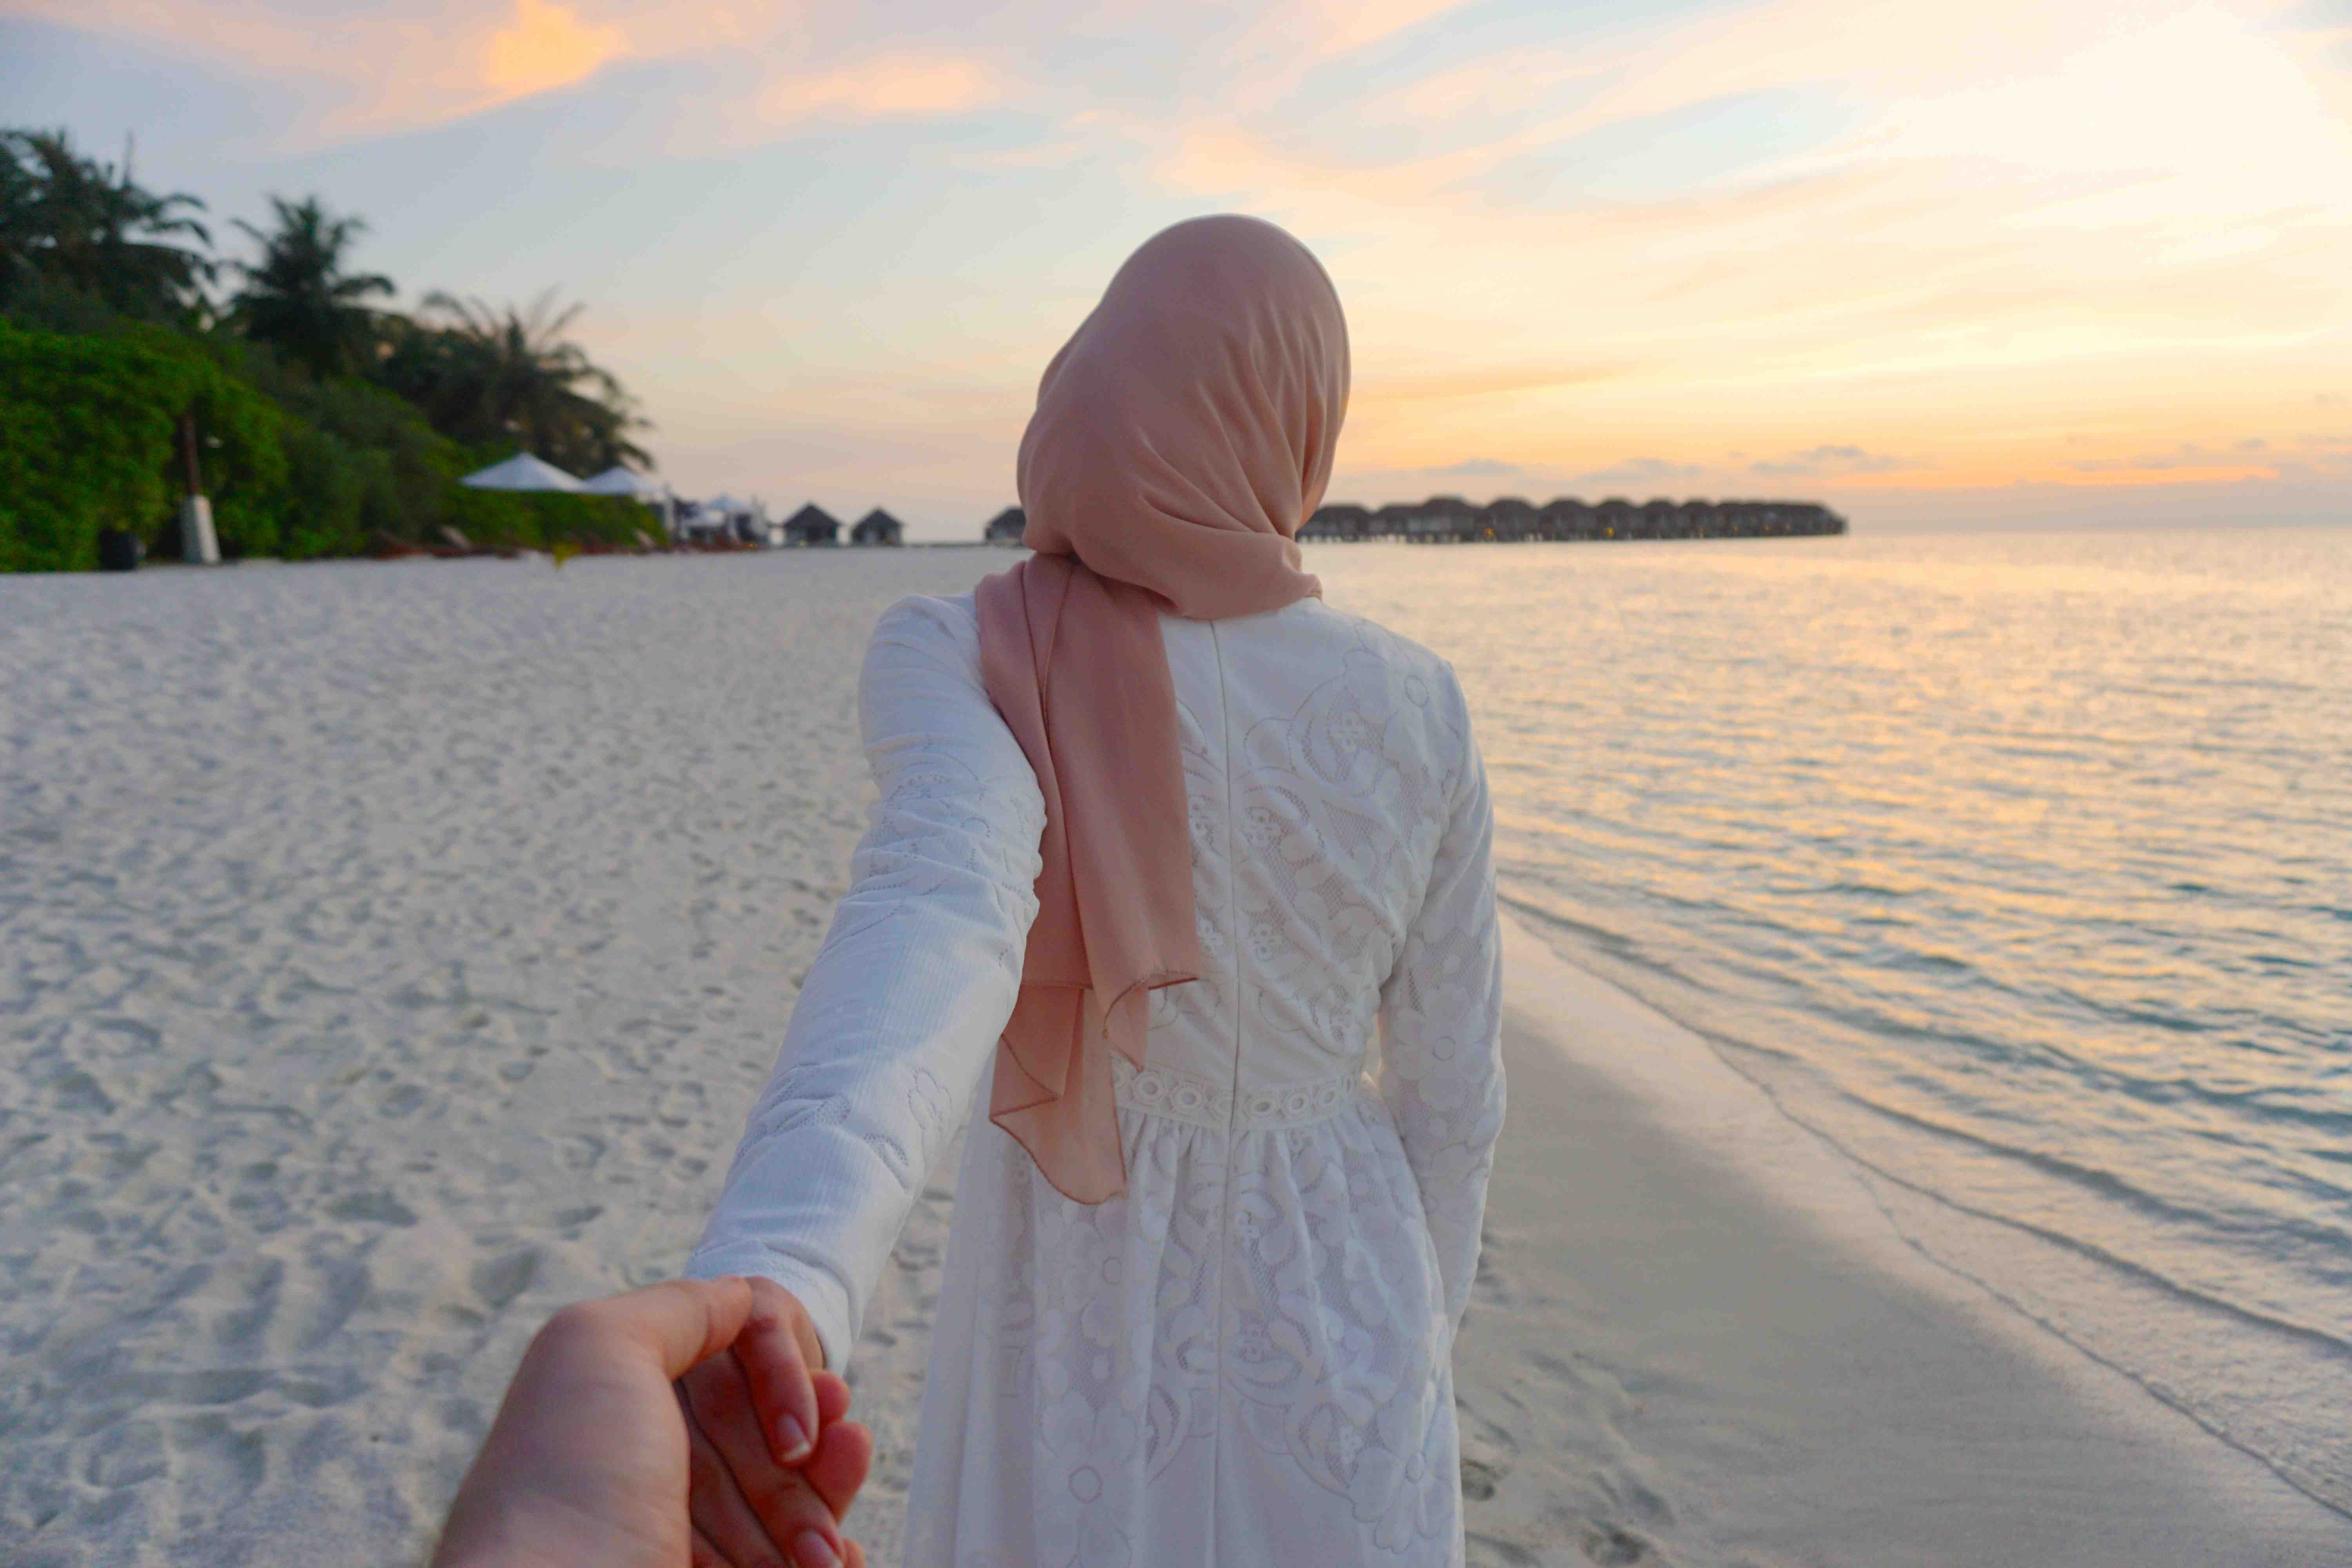 head waters muslim single women Muslim singles uk - welcome to the simple online dating site, here you can chat, date, or just flirt with men or women sign up for free and send messages to single women or man.